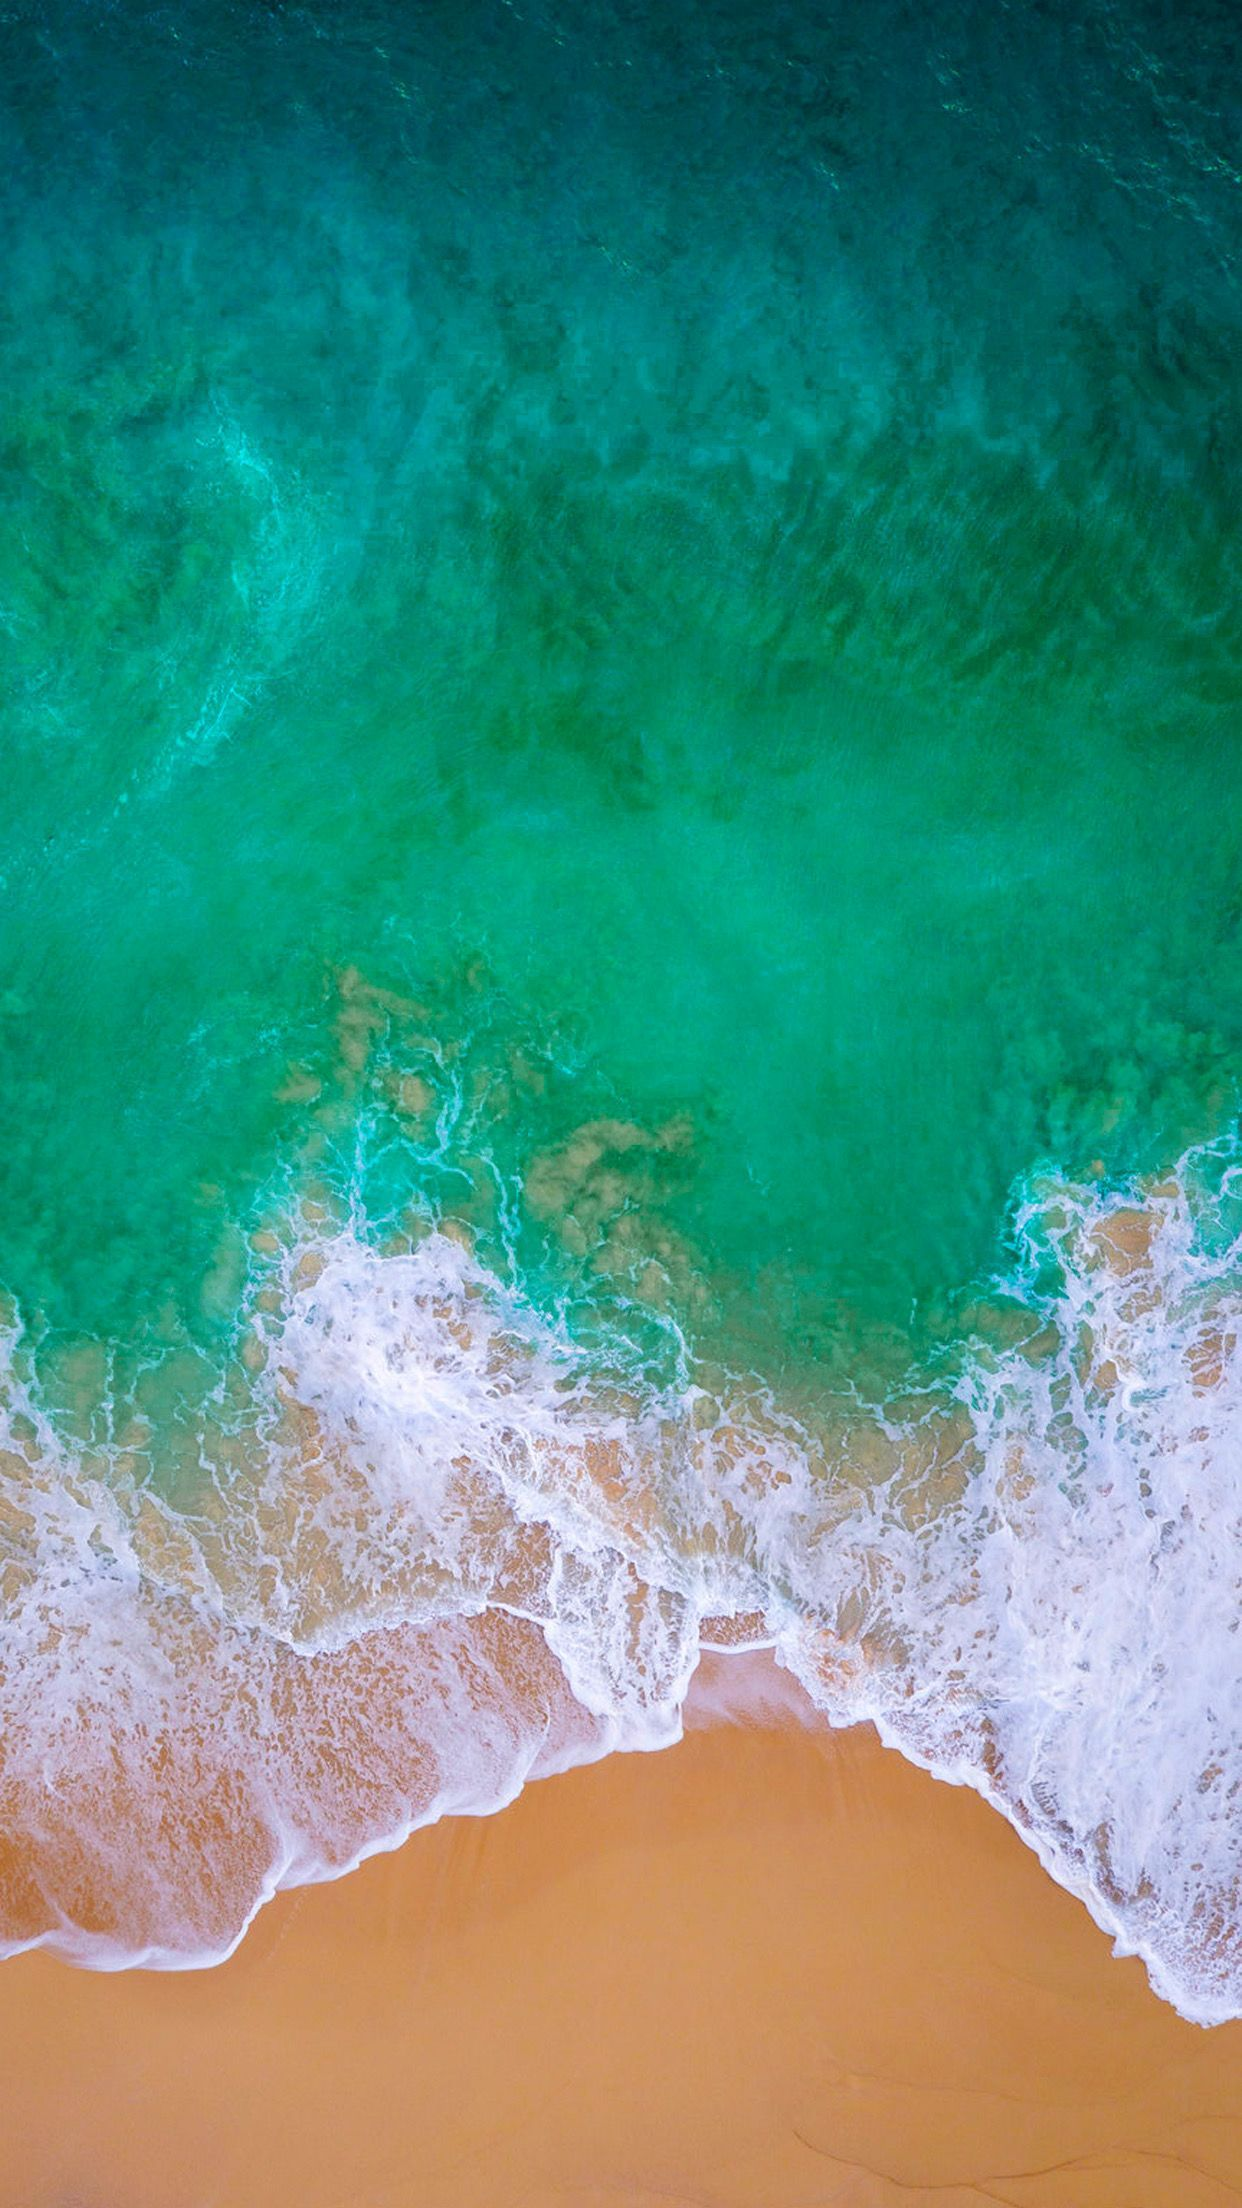 coses de mar Iphone wallpaper ocean, Beach wallpaper